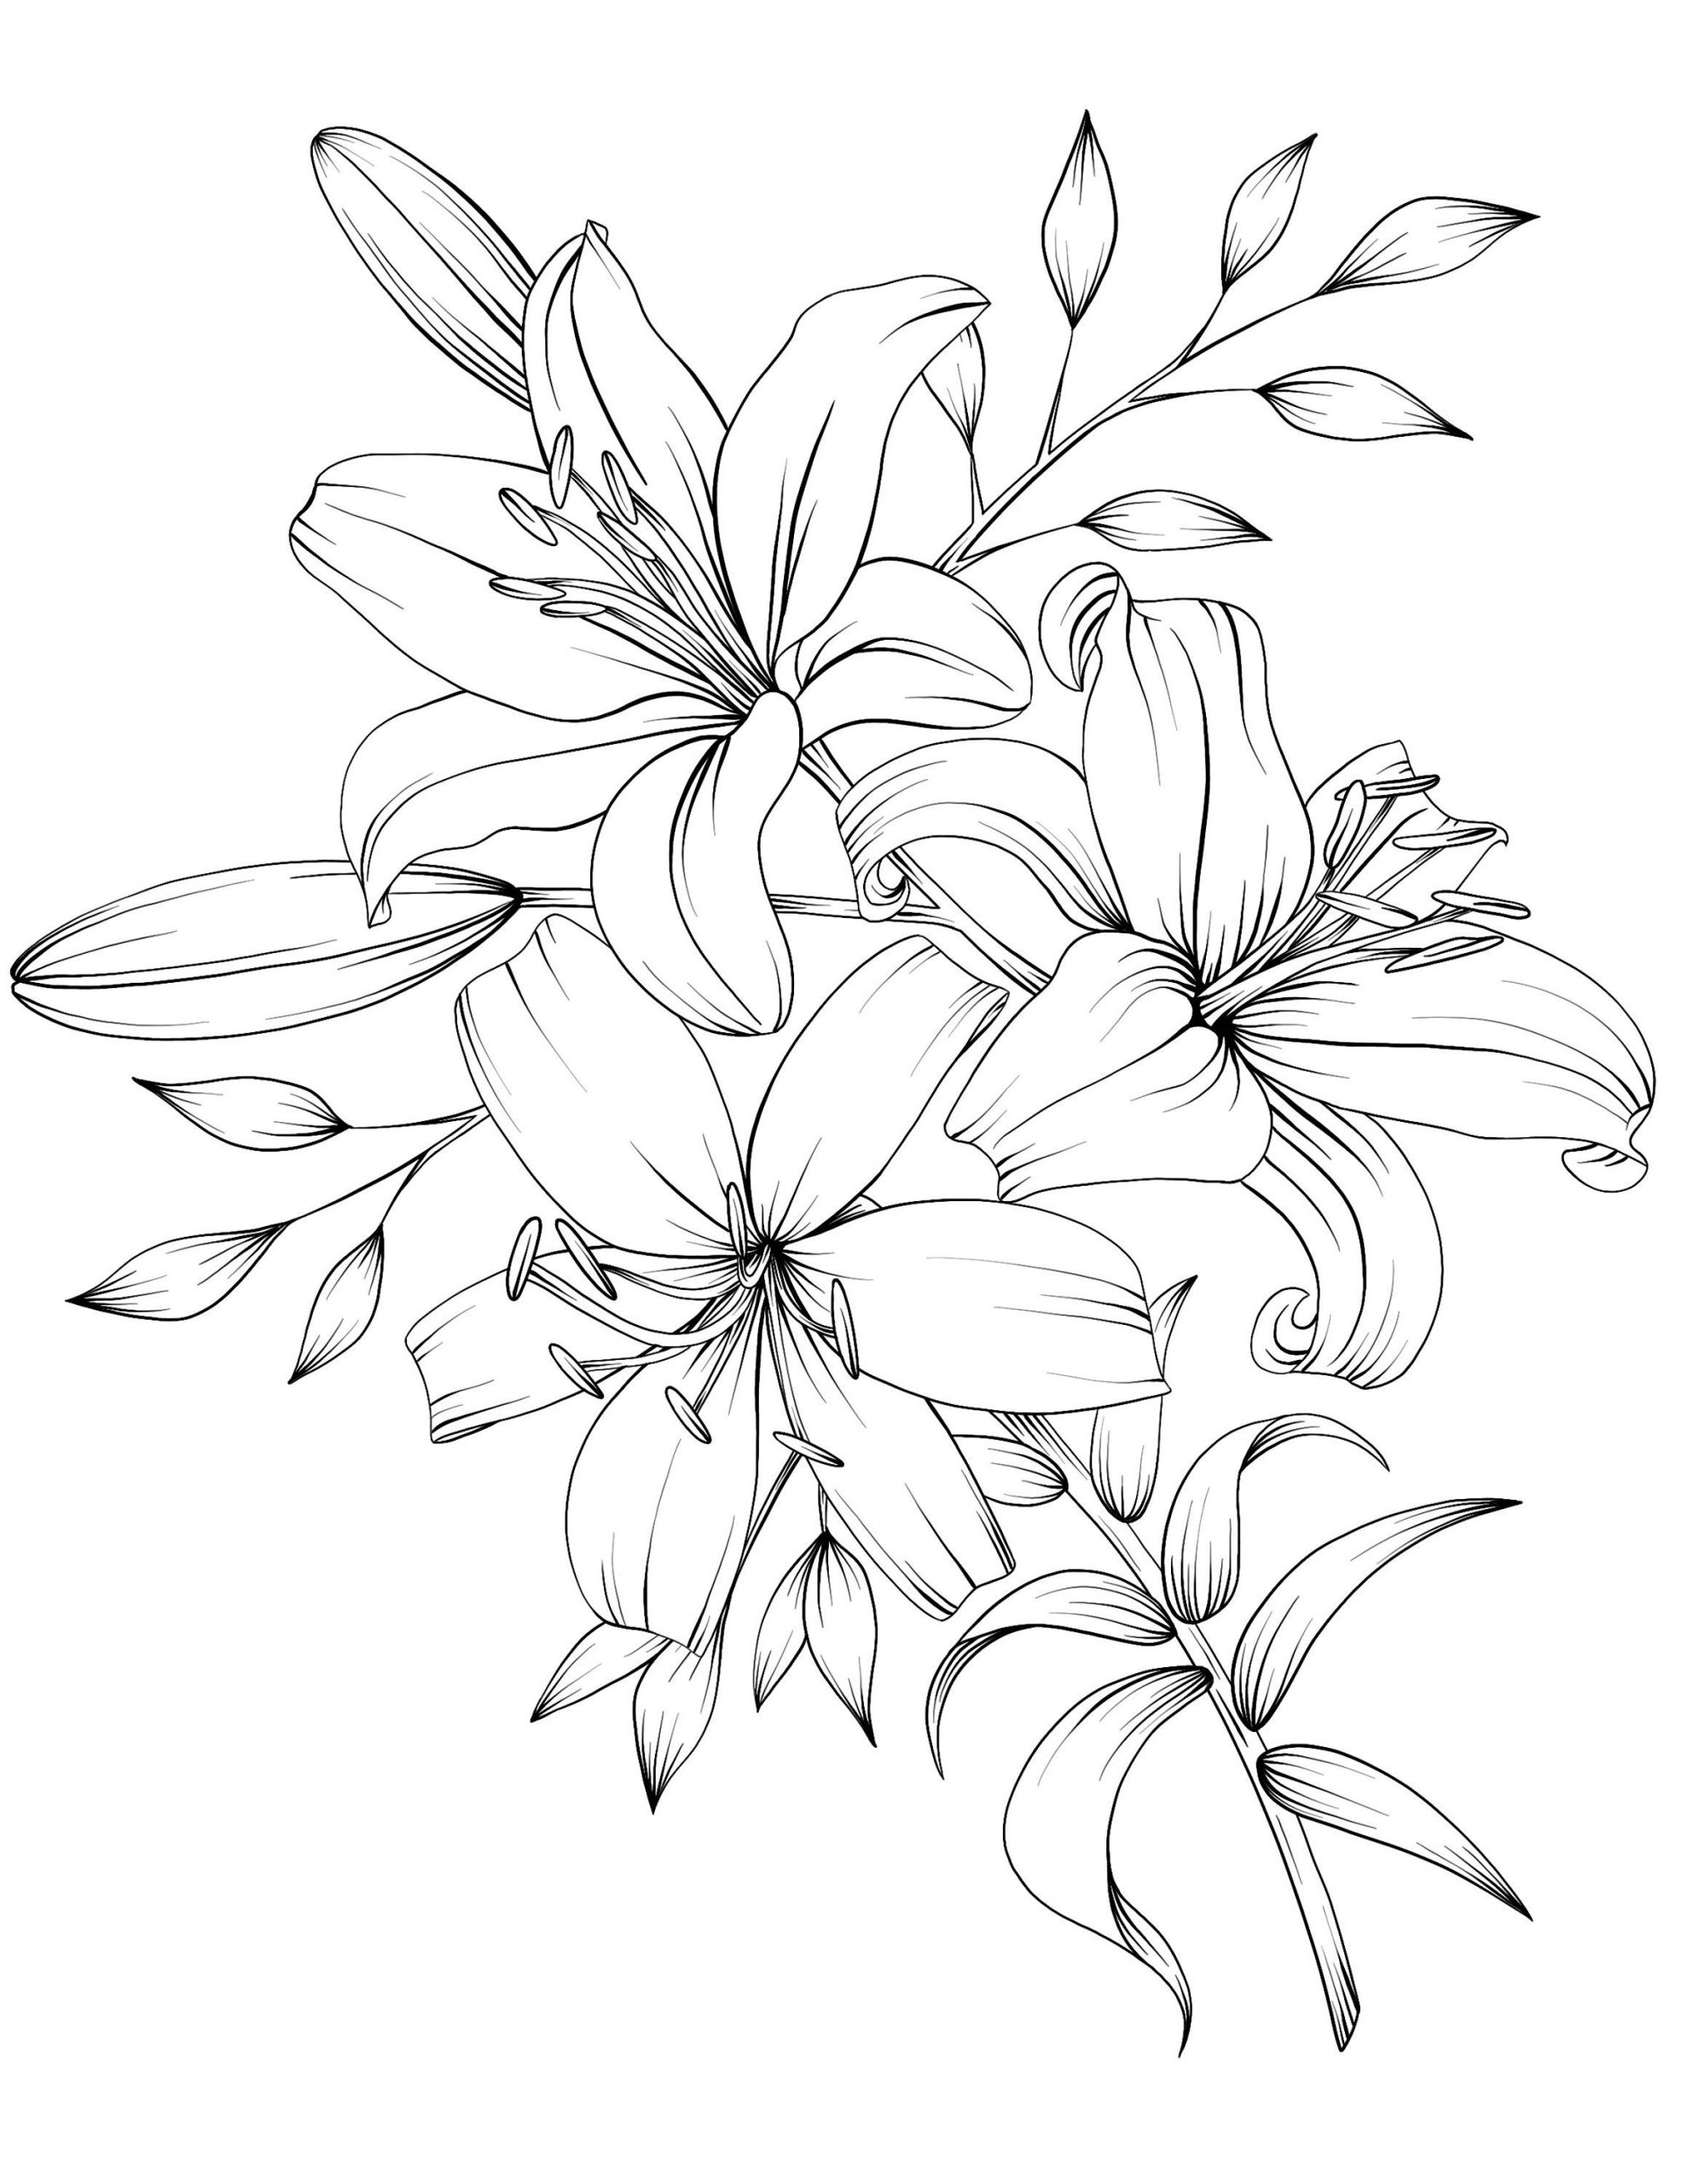 bouquet of flowers drawing vintage garden drawing spring bouquet stock photo bouquet drawing flowers of